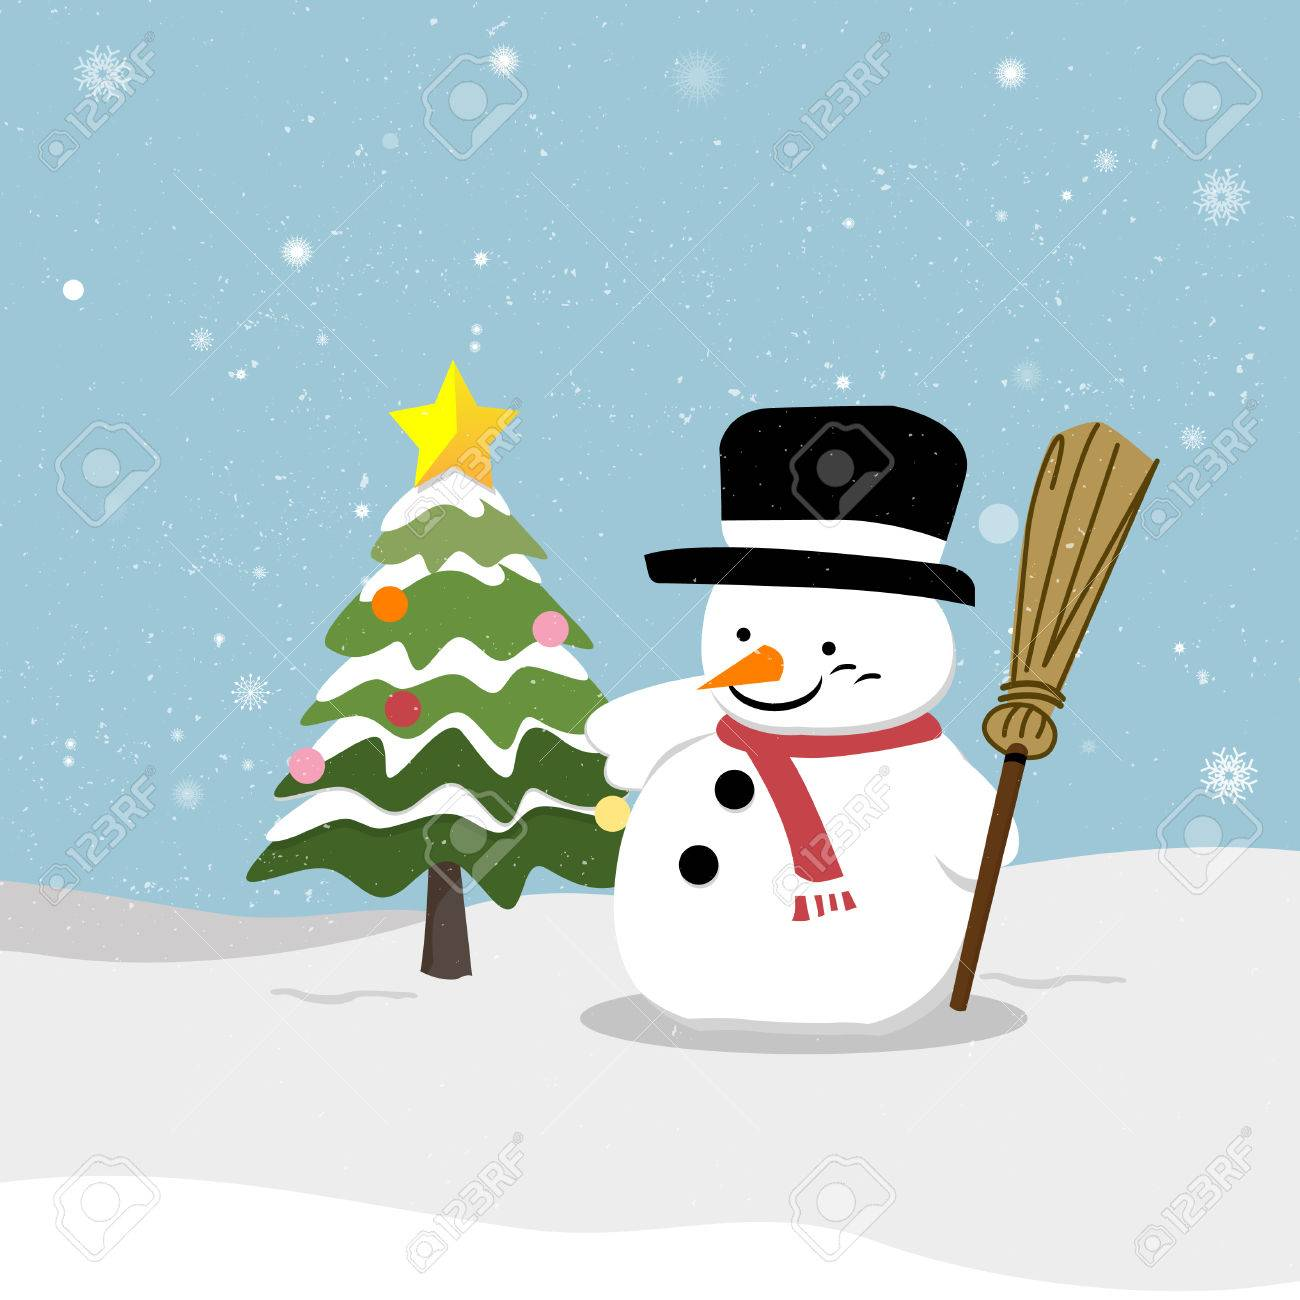 Snowman With Christmas Tree Vector Snowman Eps 10 Vector Illustration Royalty Free Cliparts Vectors And Stock Illustration Image 24024990